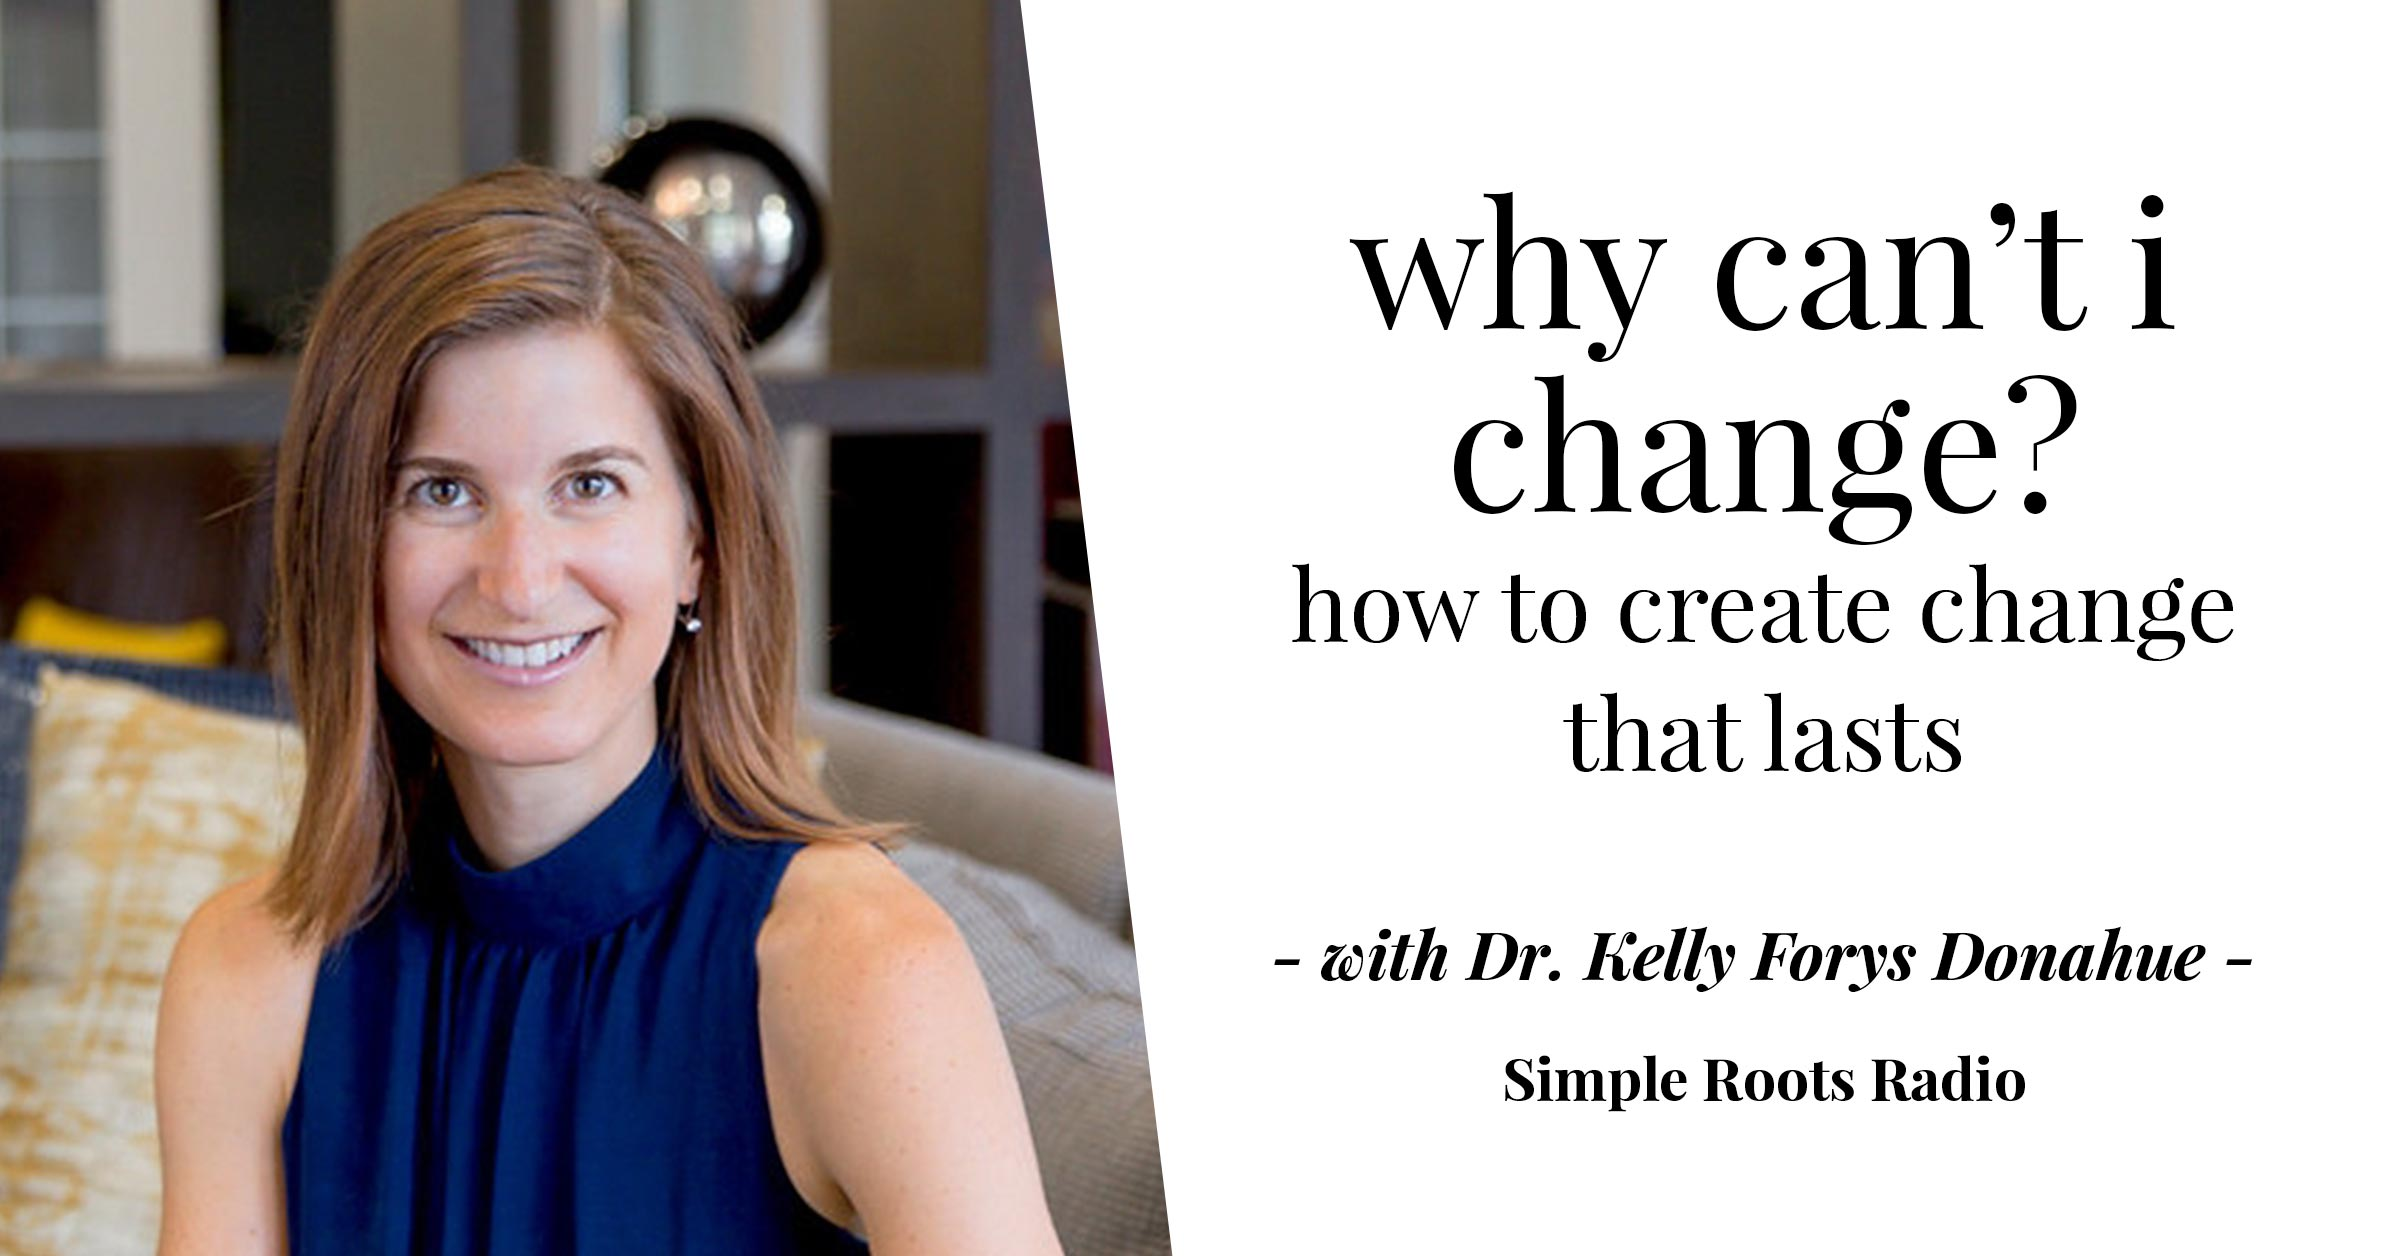 Why Can't I Change? | simplerootswellness.com #podcast #change #mentalhealth #habits #goals #newyear #resolutions